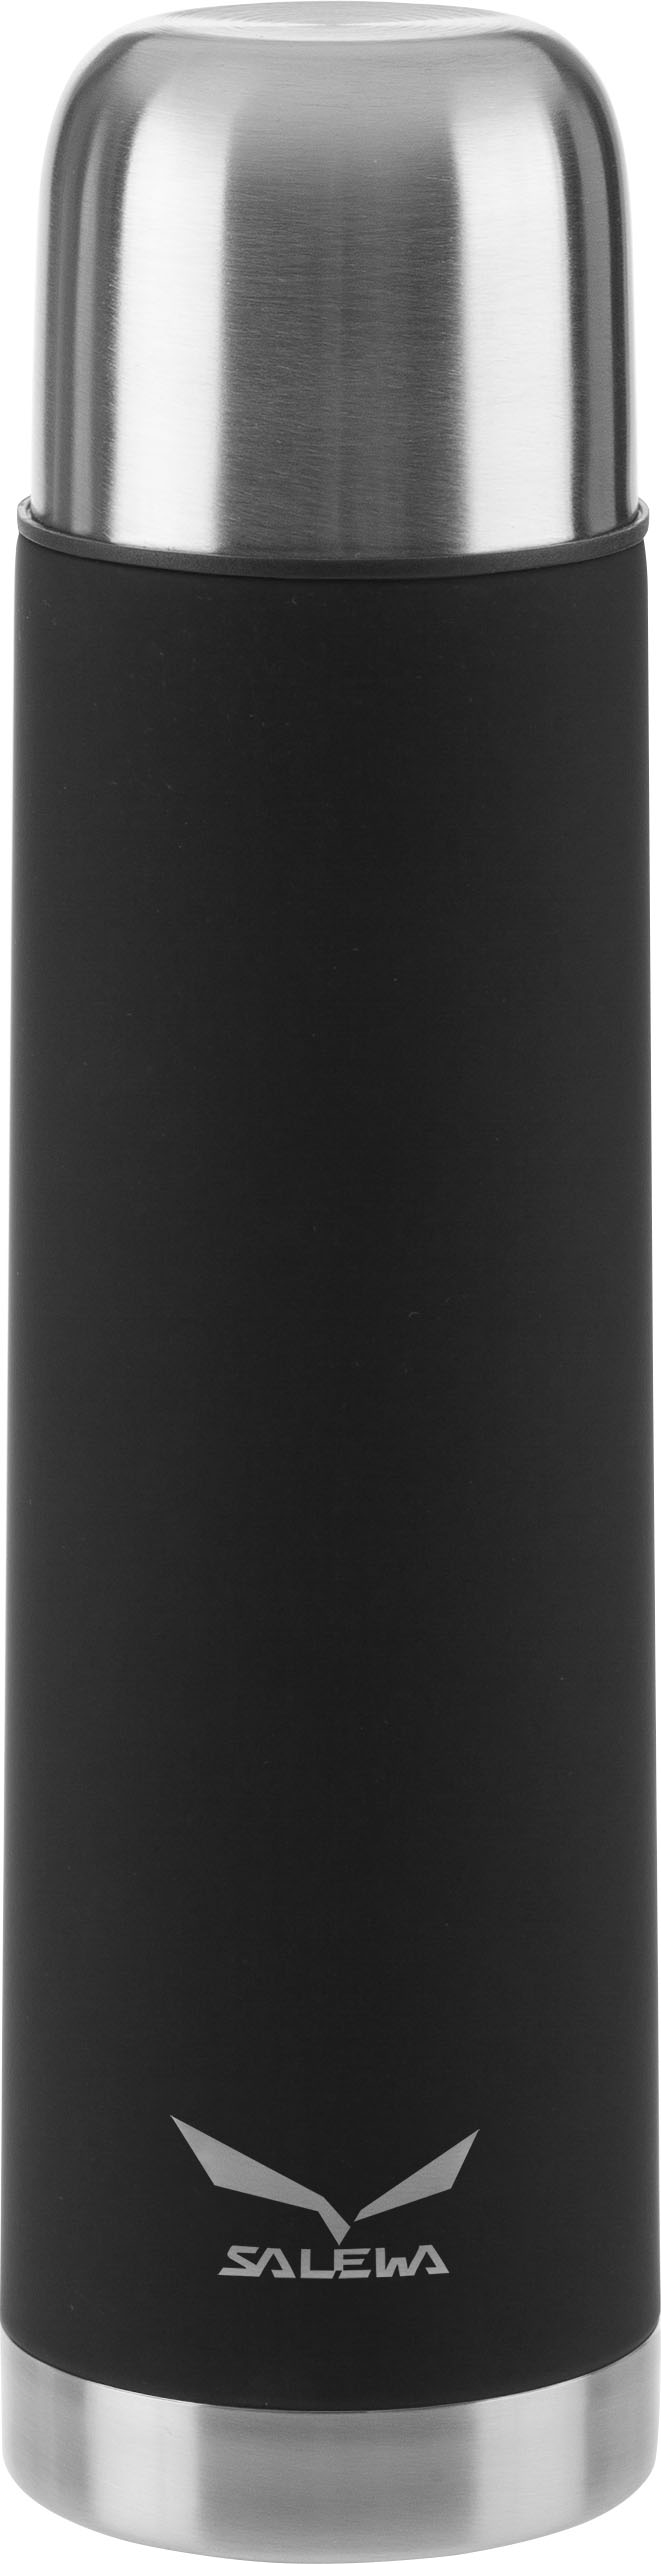 Термос Salewa THERMOBOTTELS THERMOBOTTLE 0,5 L BLACK /